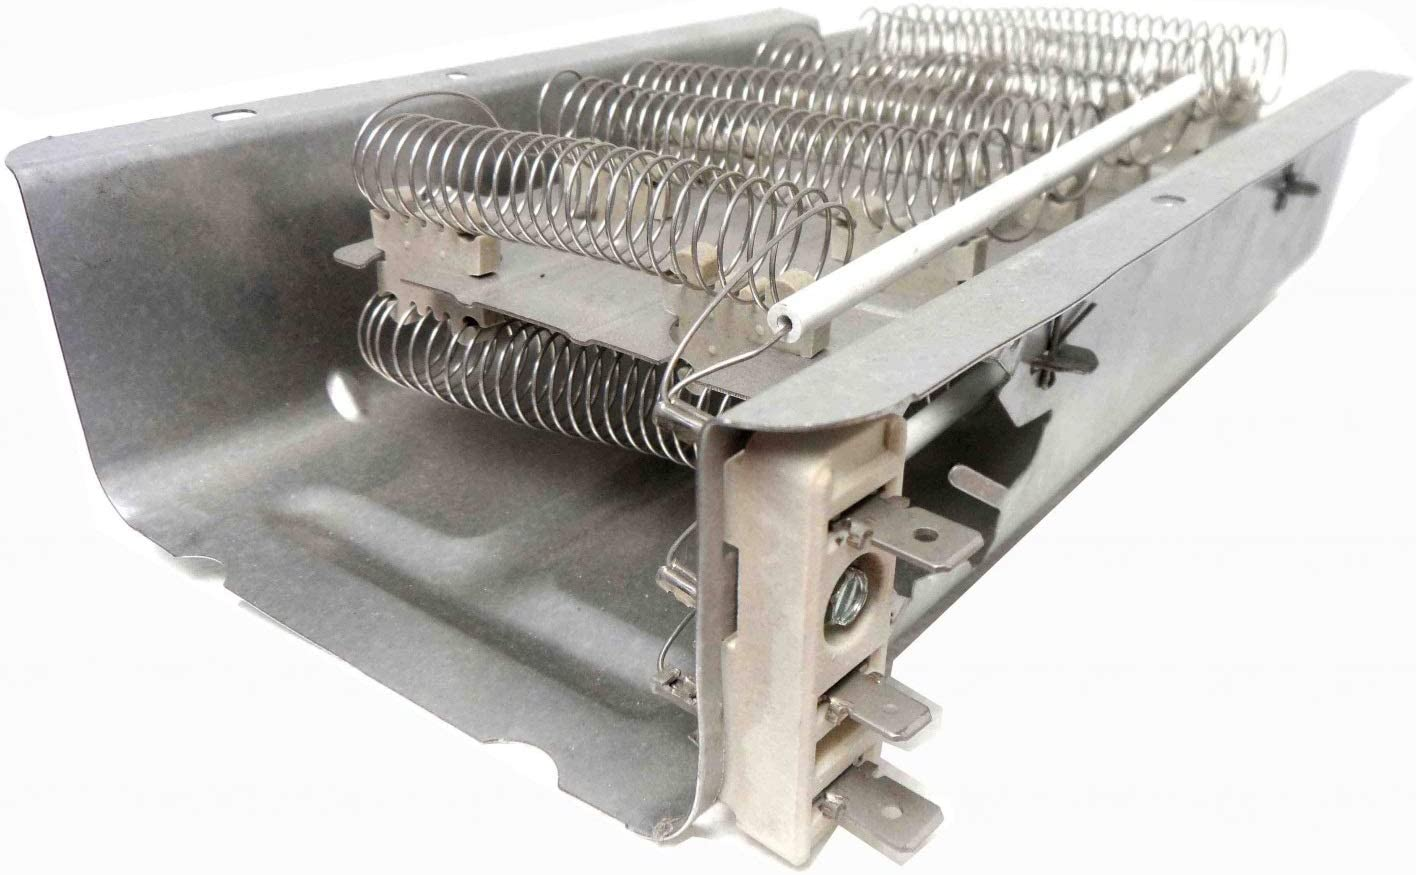 Edgewater Parts Dryer Heating Element 3401338, AP6008492, PS11741631 Compatible with Whirlpool Dryer